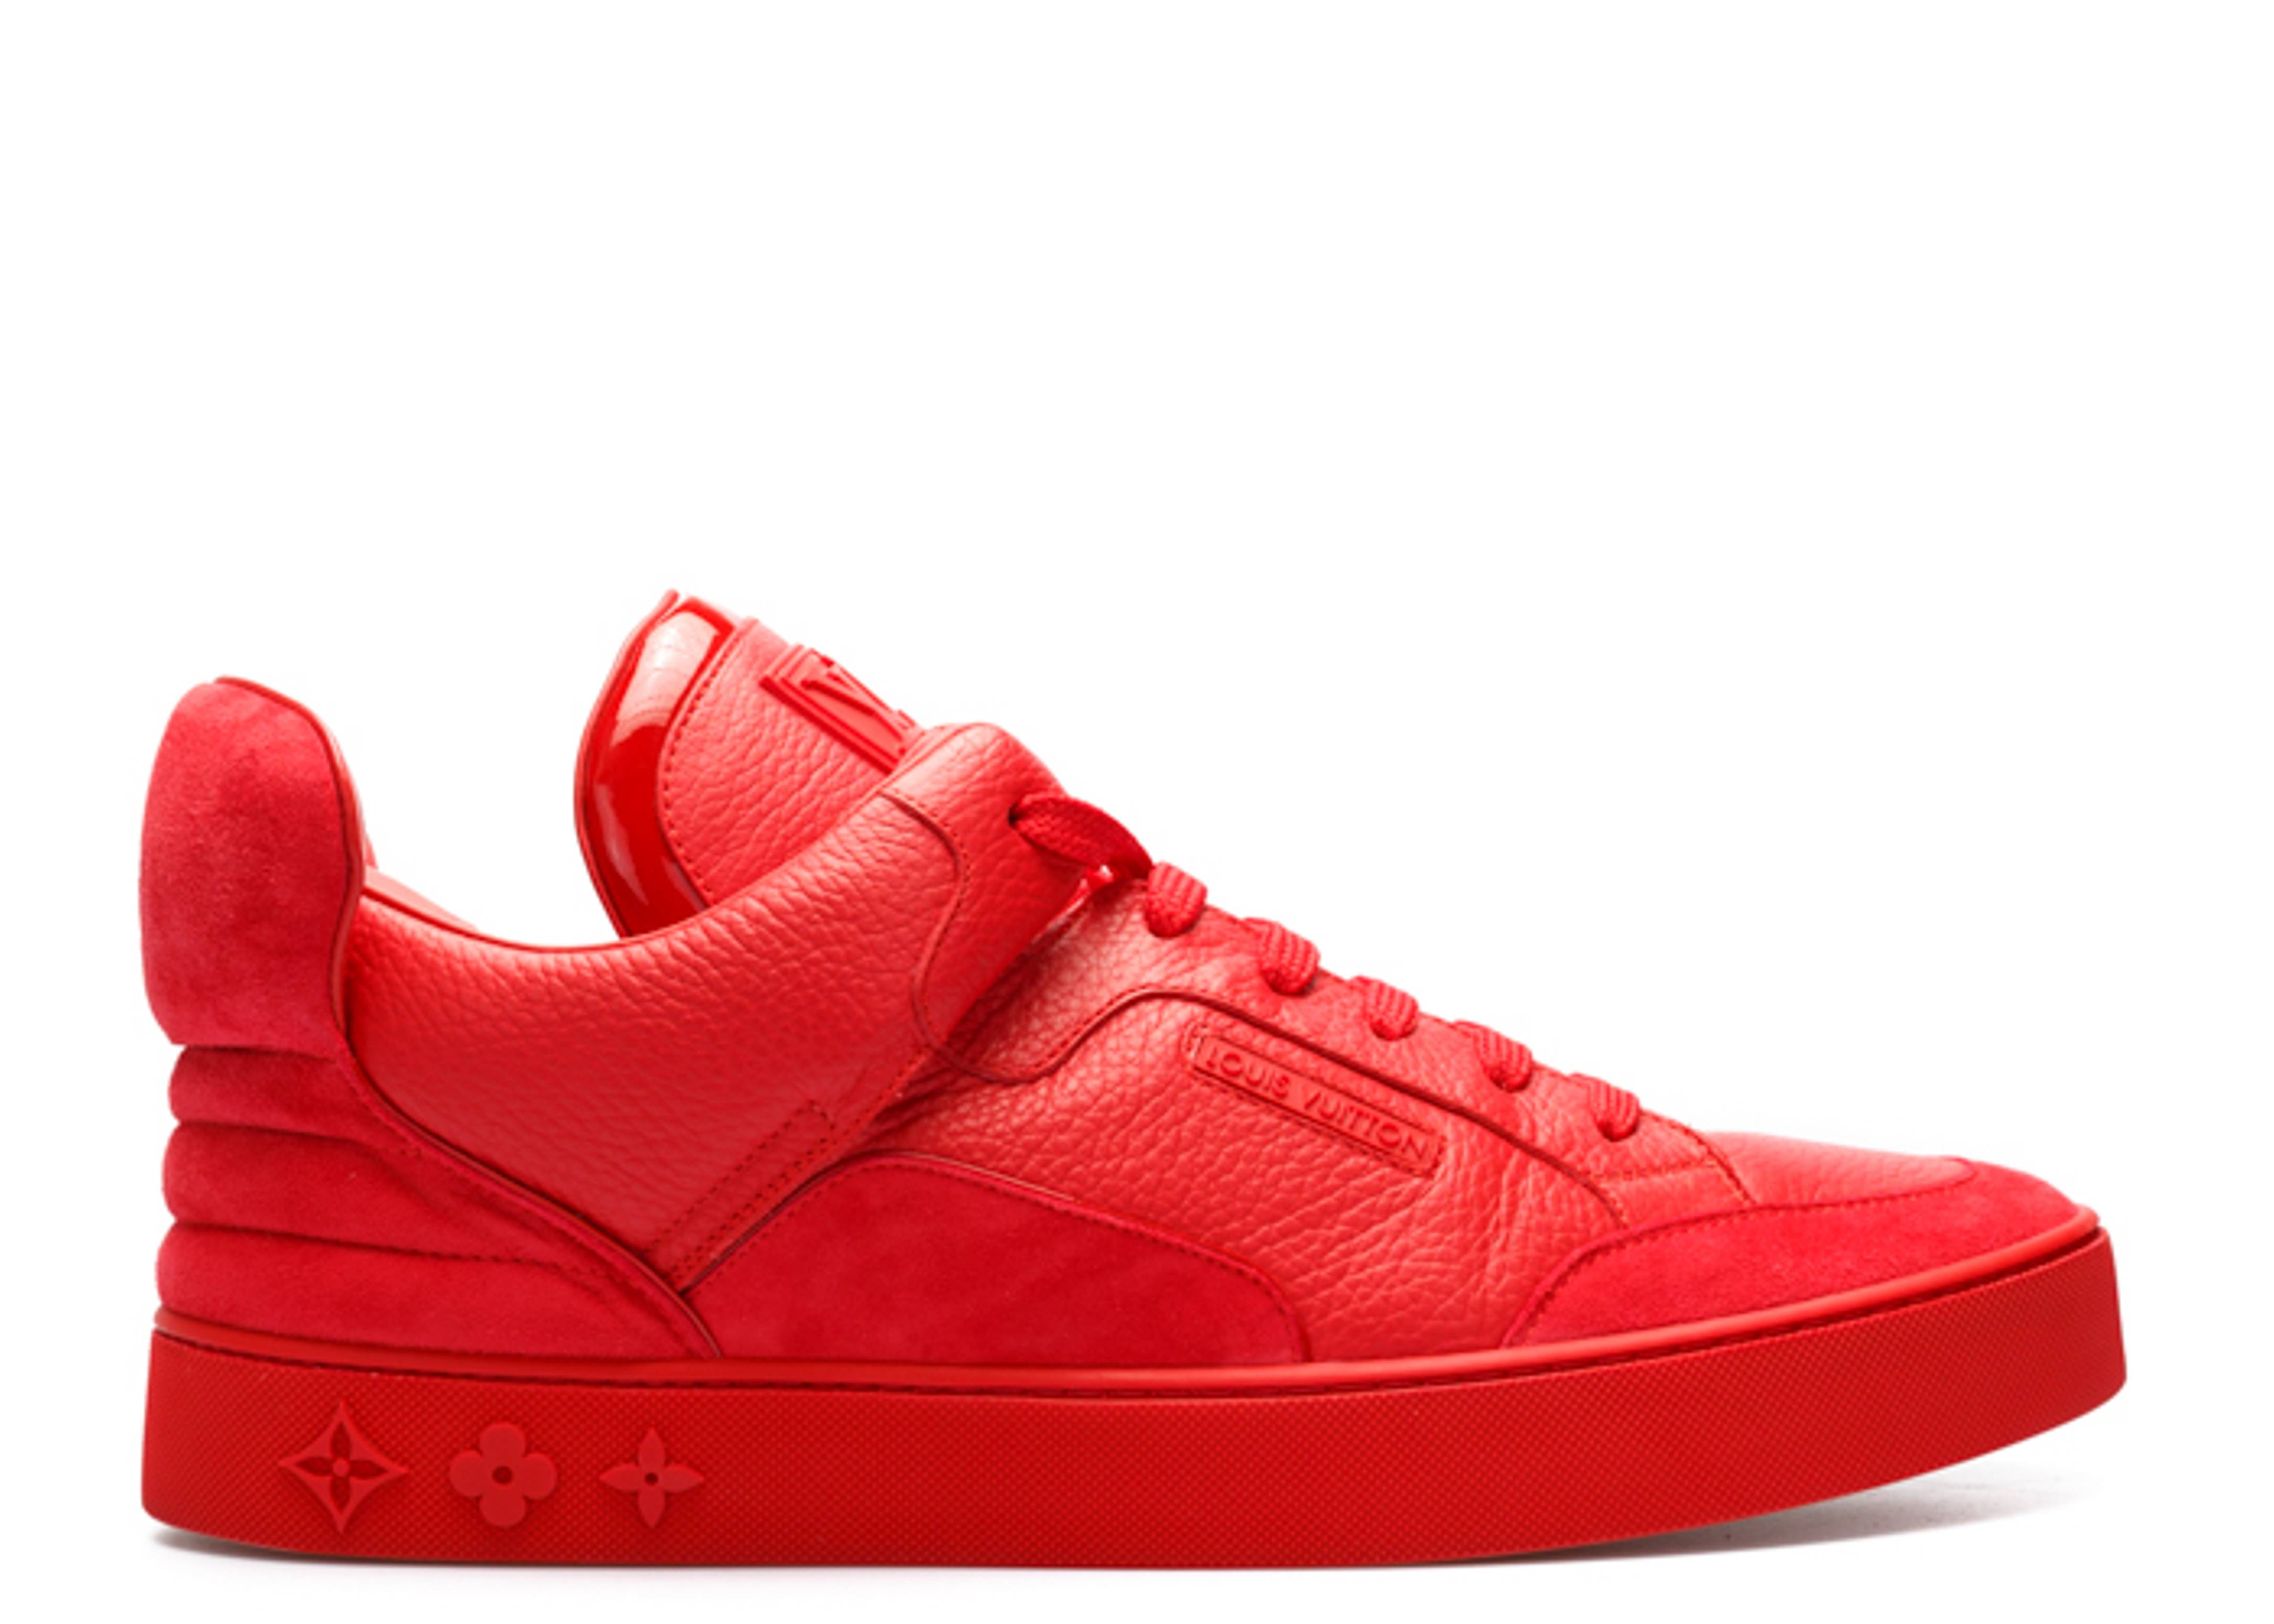 All Red Gucci Shoes